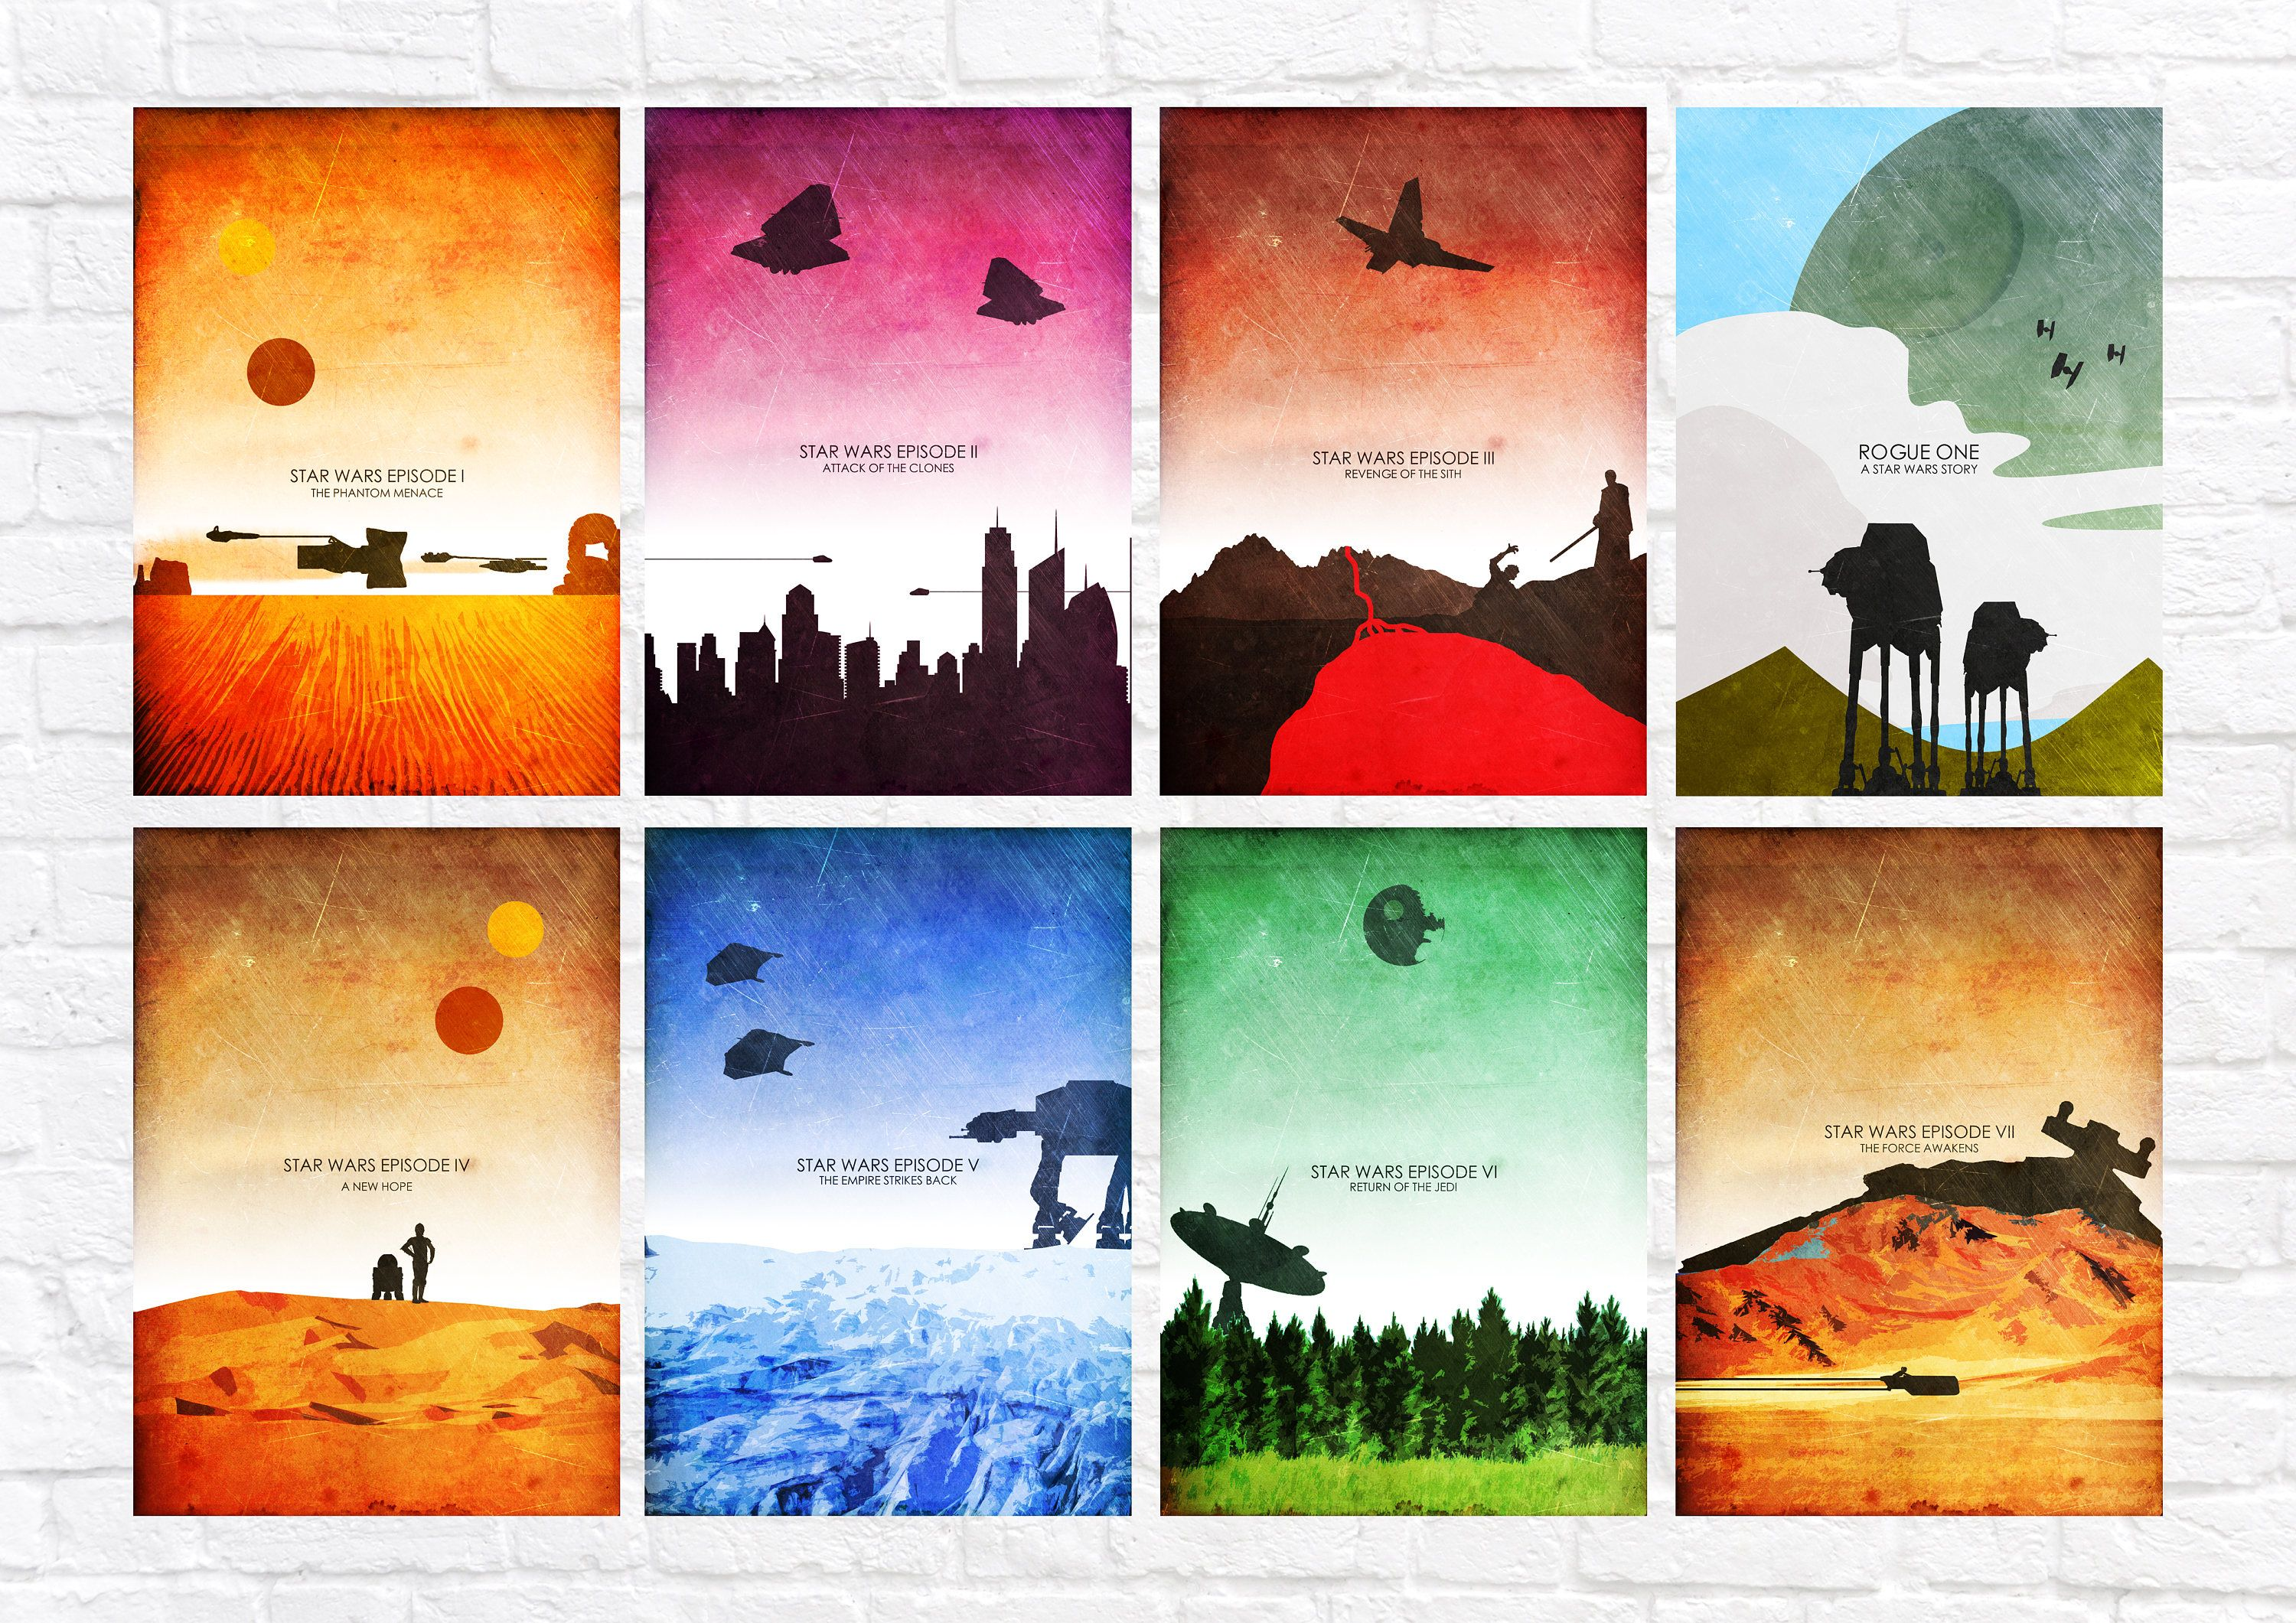 Star Wars Episode I Viii Minimalist Art Poster Print Set Last Jedi Wall Art Star Wars Poster Set Of All 8 Prints Star Wars Wall Art Star Wars Poster Jedi Wall Art